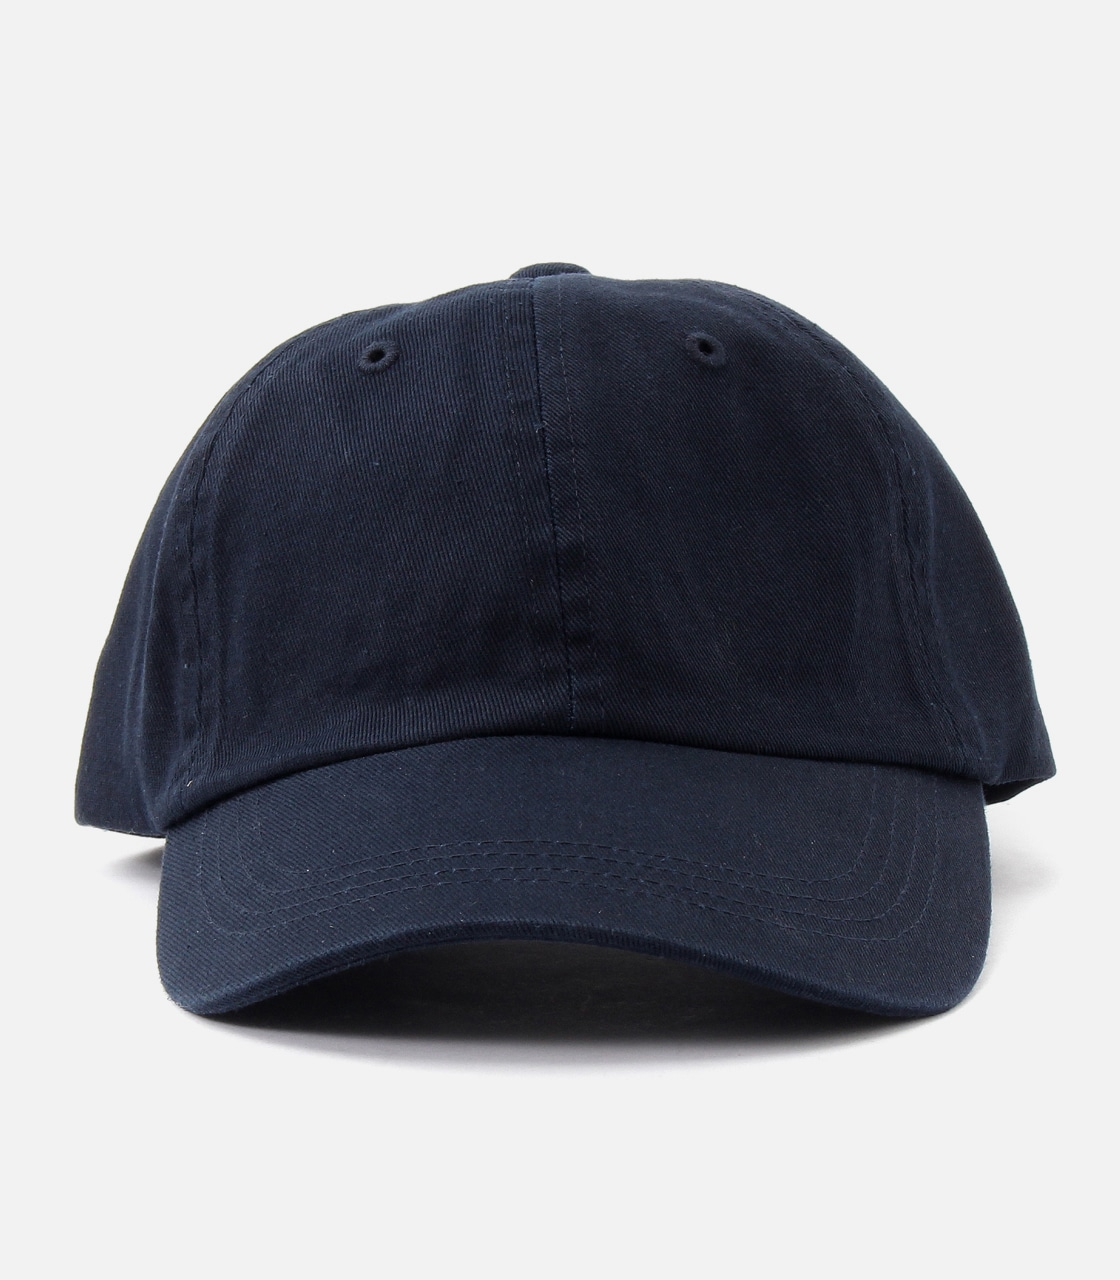 【AZUL BY MOUSSY】BASIC TWILL CAP 【MOOK49掲載 90020】 詳細画像 NVY 2